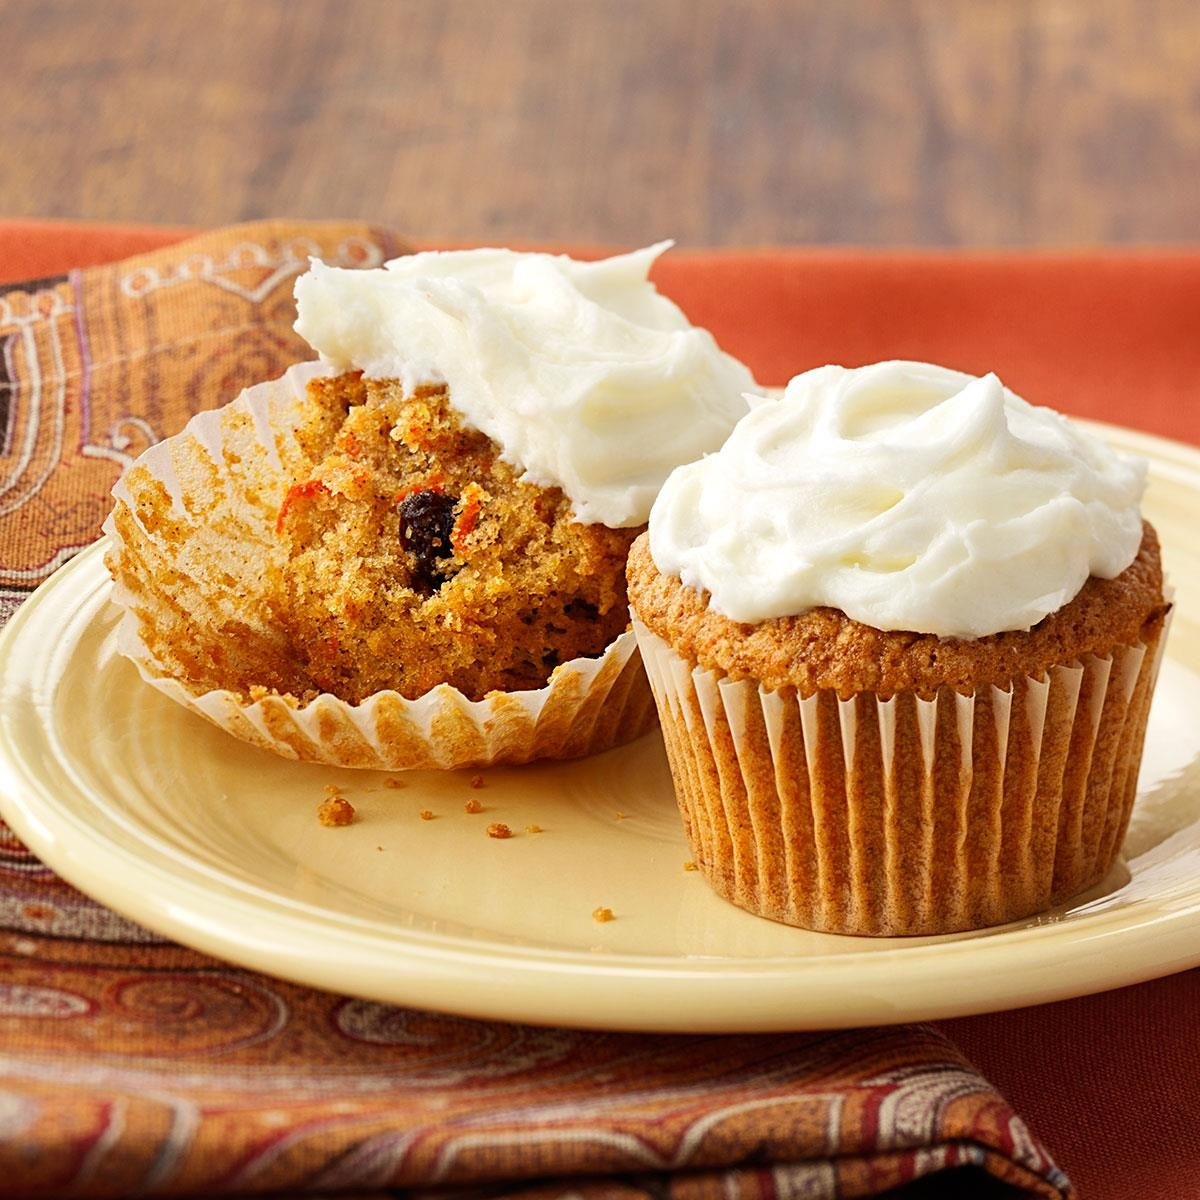 Crave Cupcakes Carrot Cake